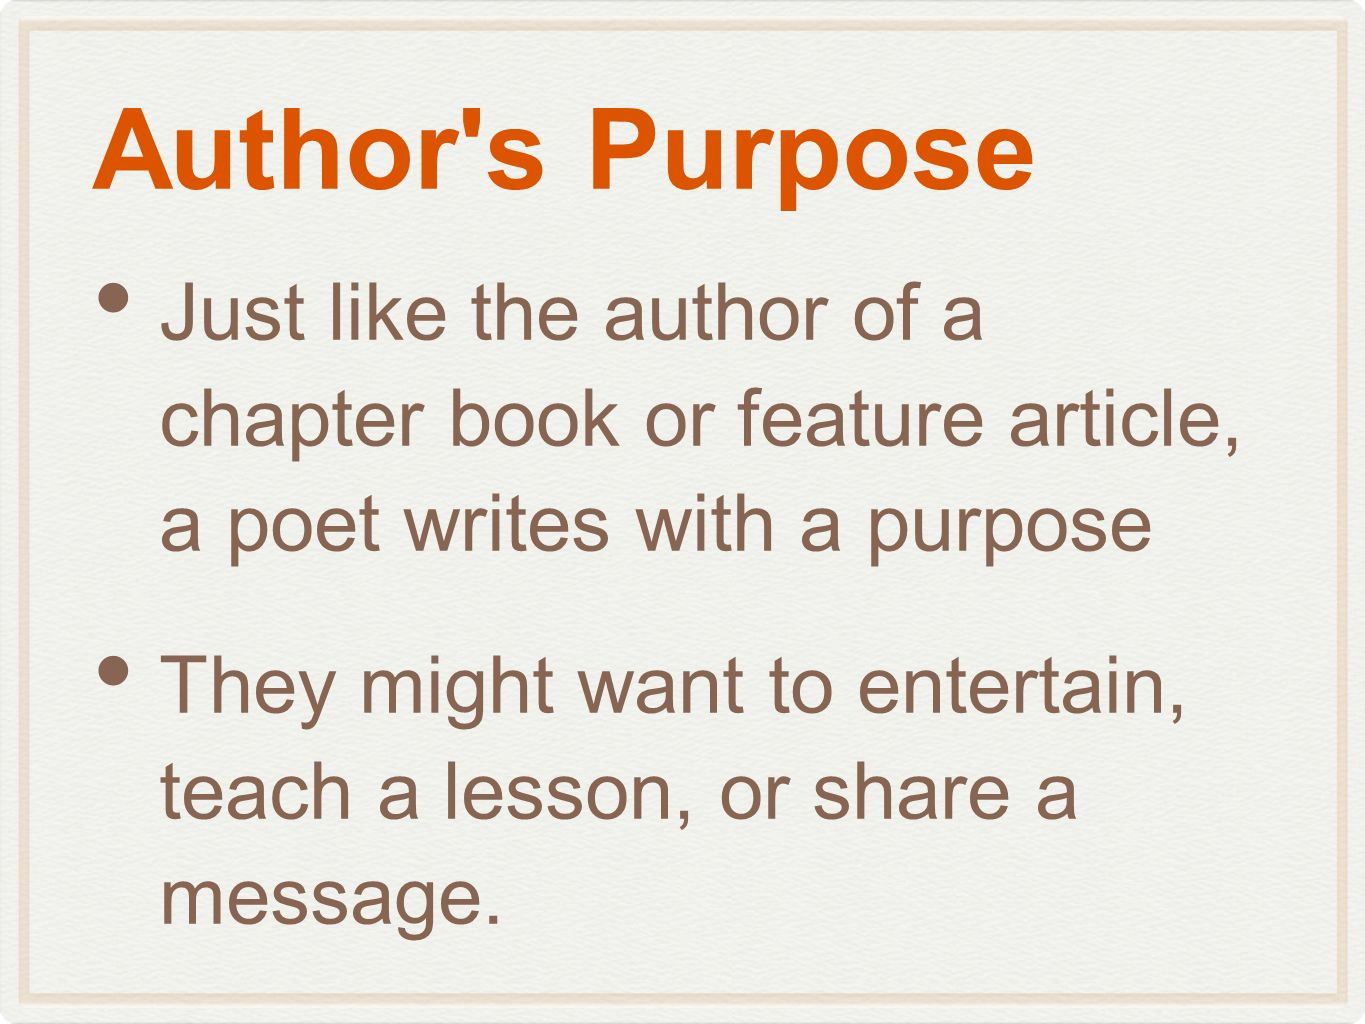 Author s Purpose Just like the author of a chapter book or feature article, a poet writes with a purpose.